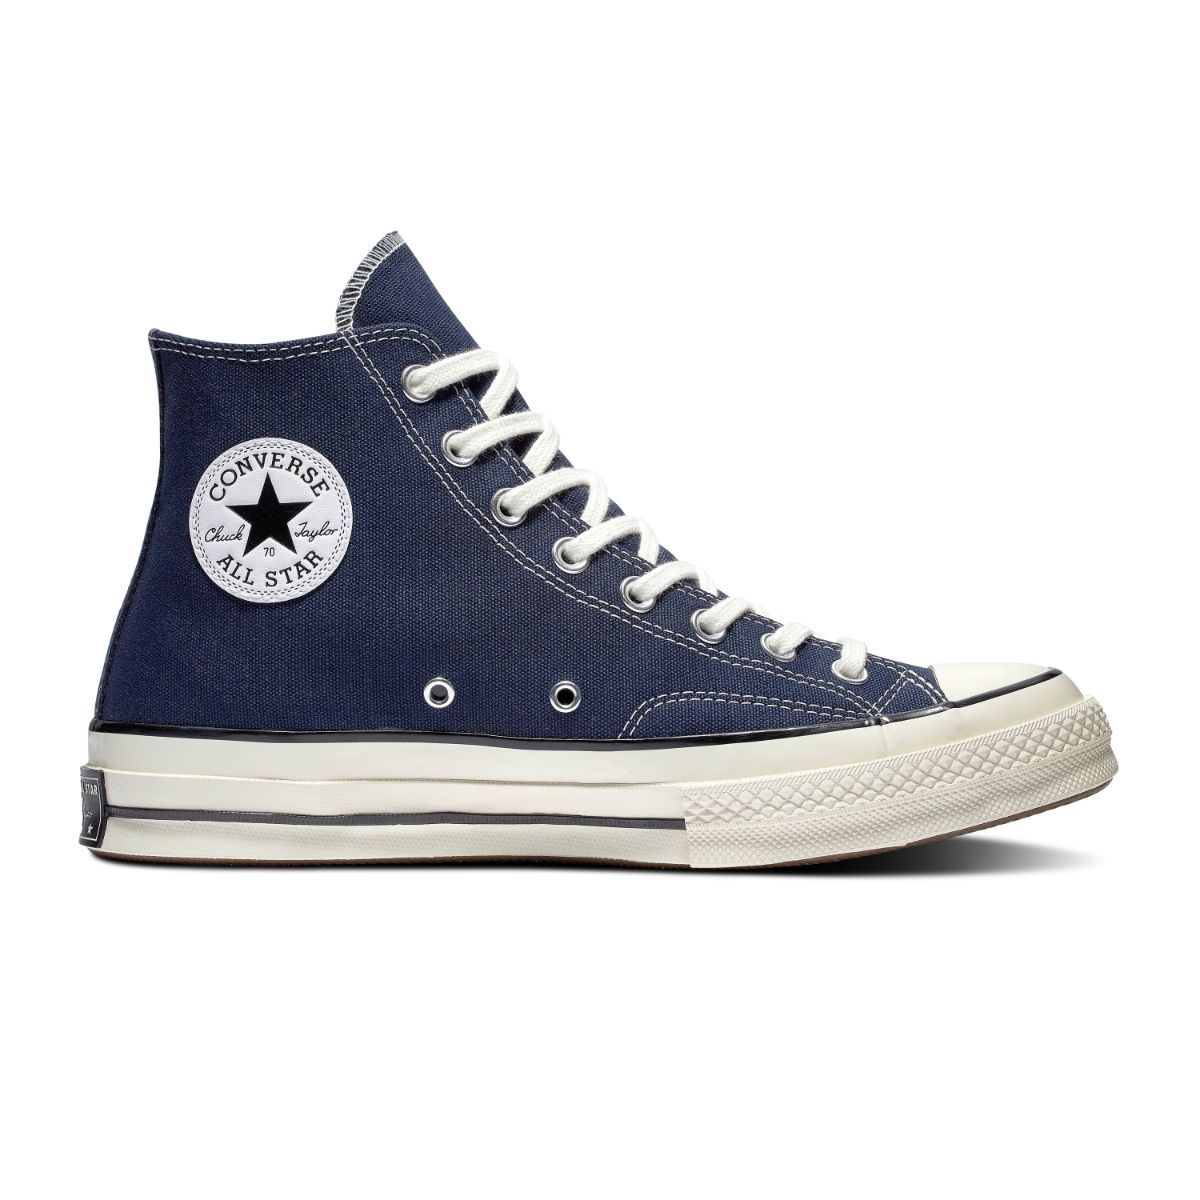 Chuck 70 Obsidian High Top